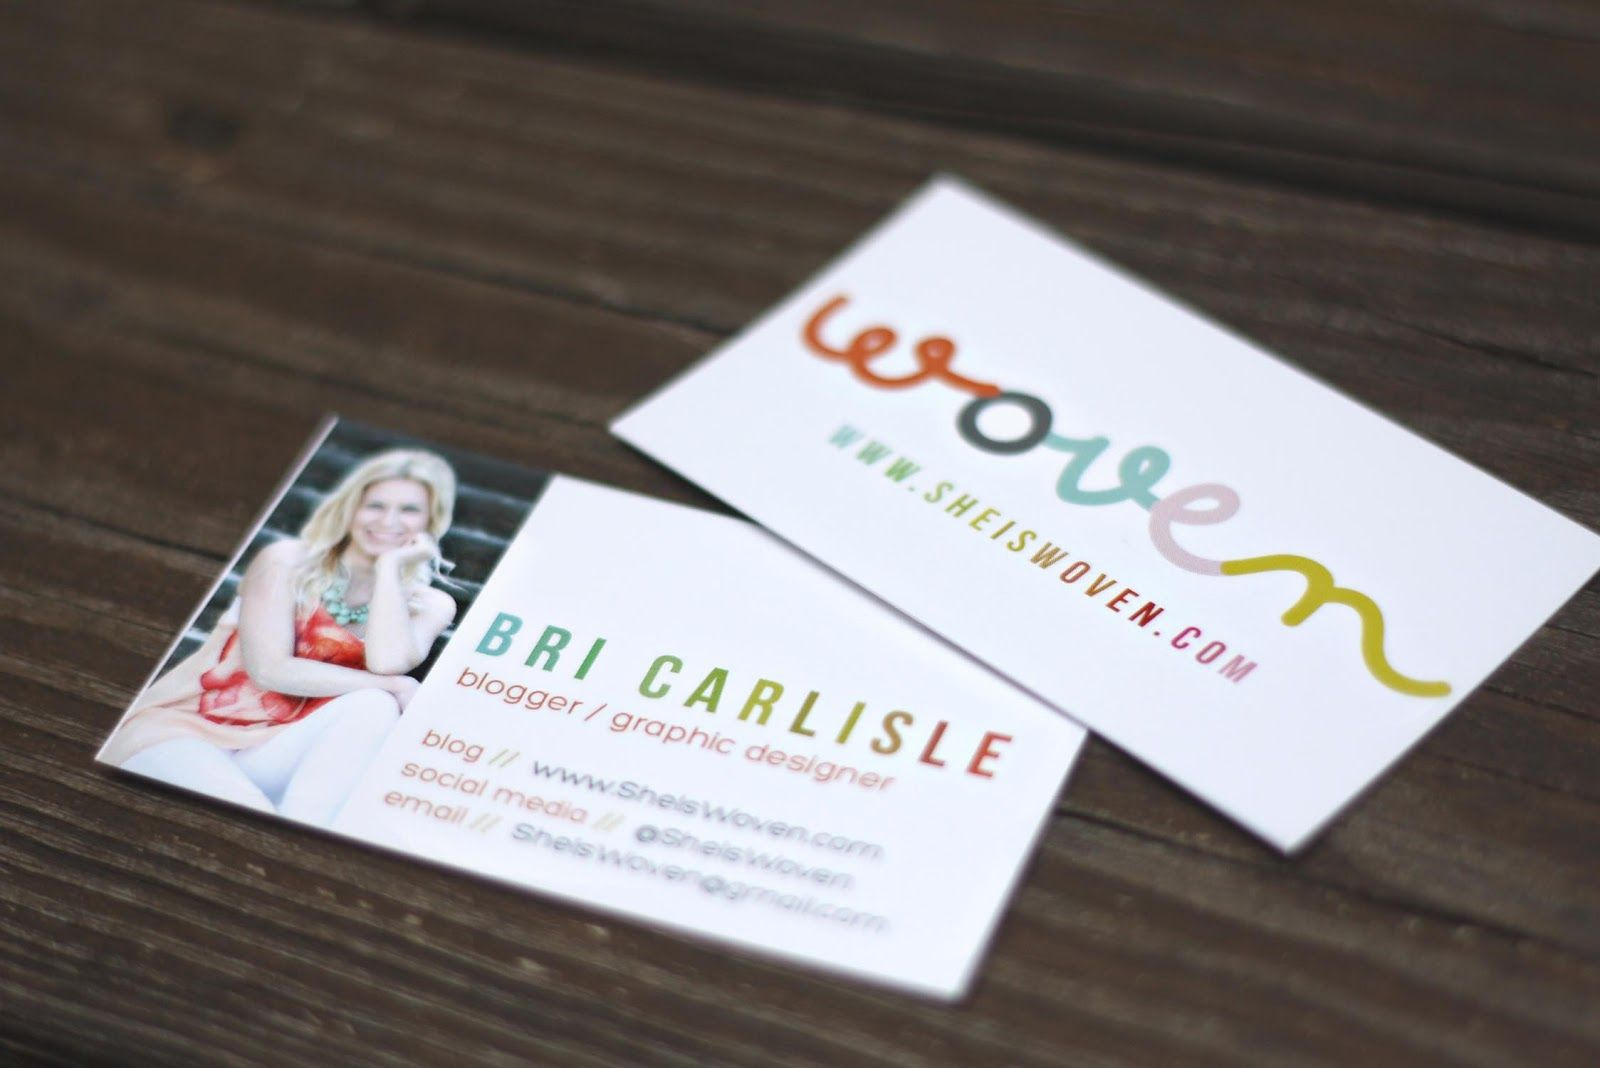 blogger business card - Google Search | Blogger business cards ...